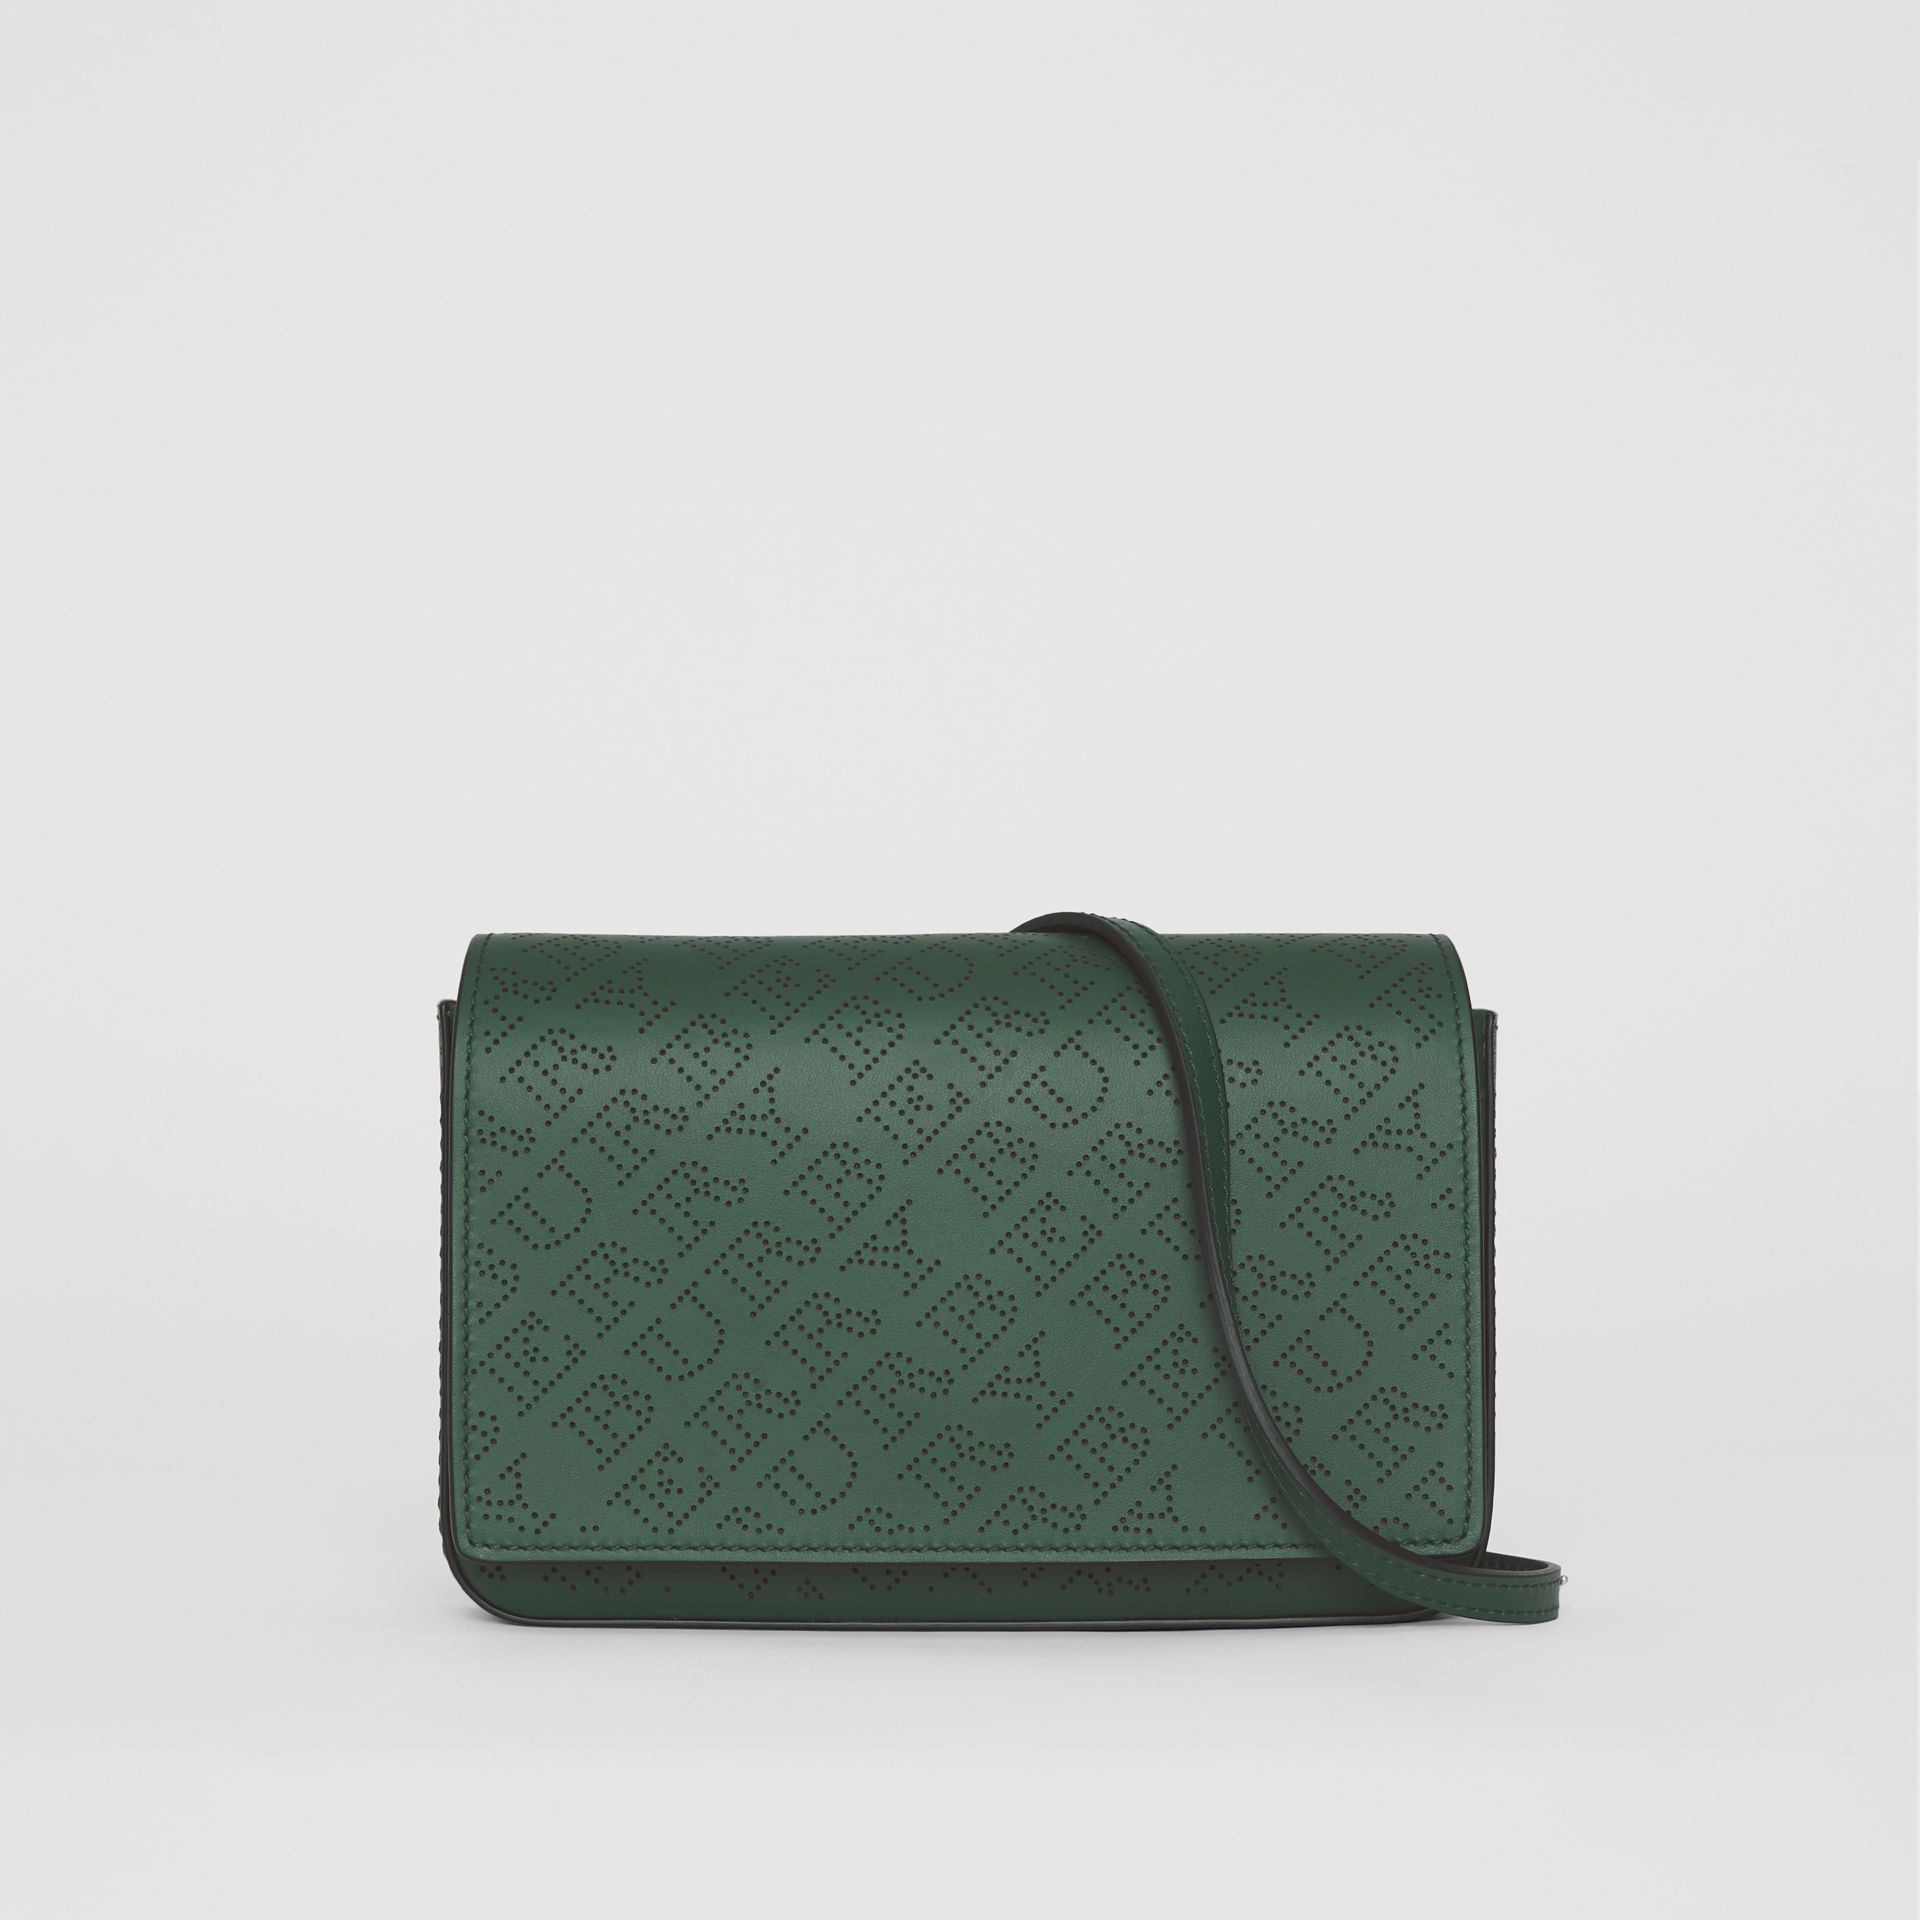 Perforated Logo Leather Wallet with Detachable Strap in Vintage Green - Women | Burberry - gallery image 0